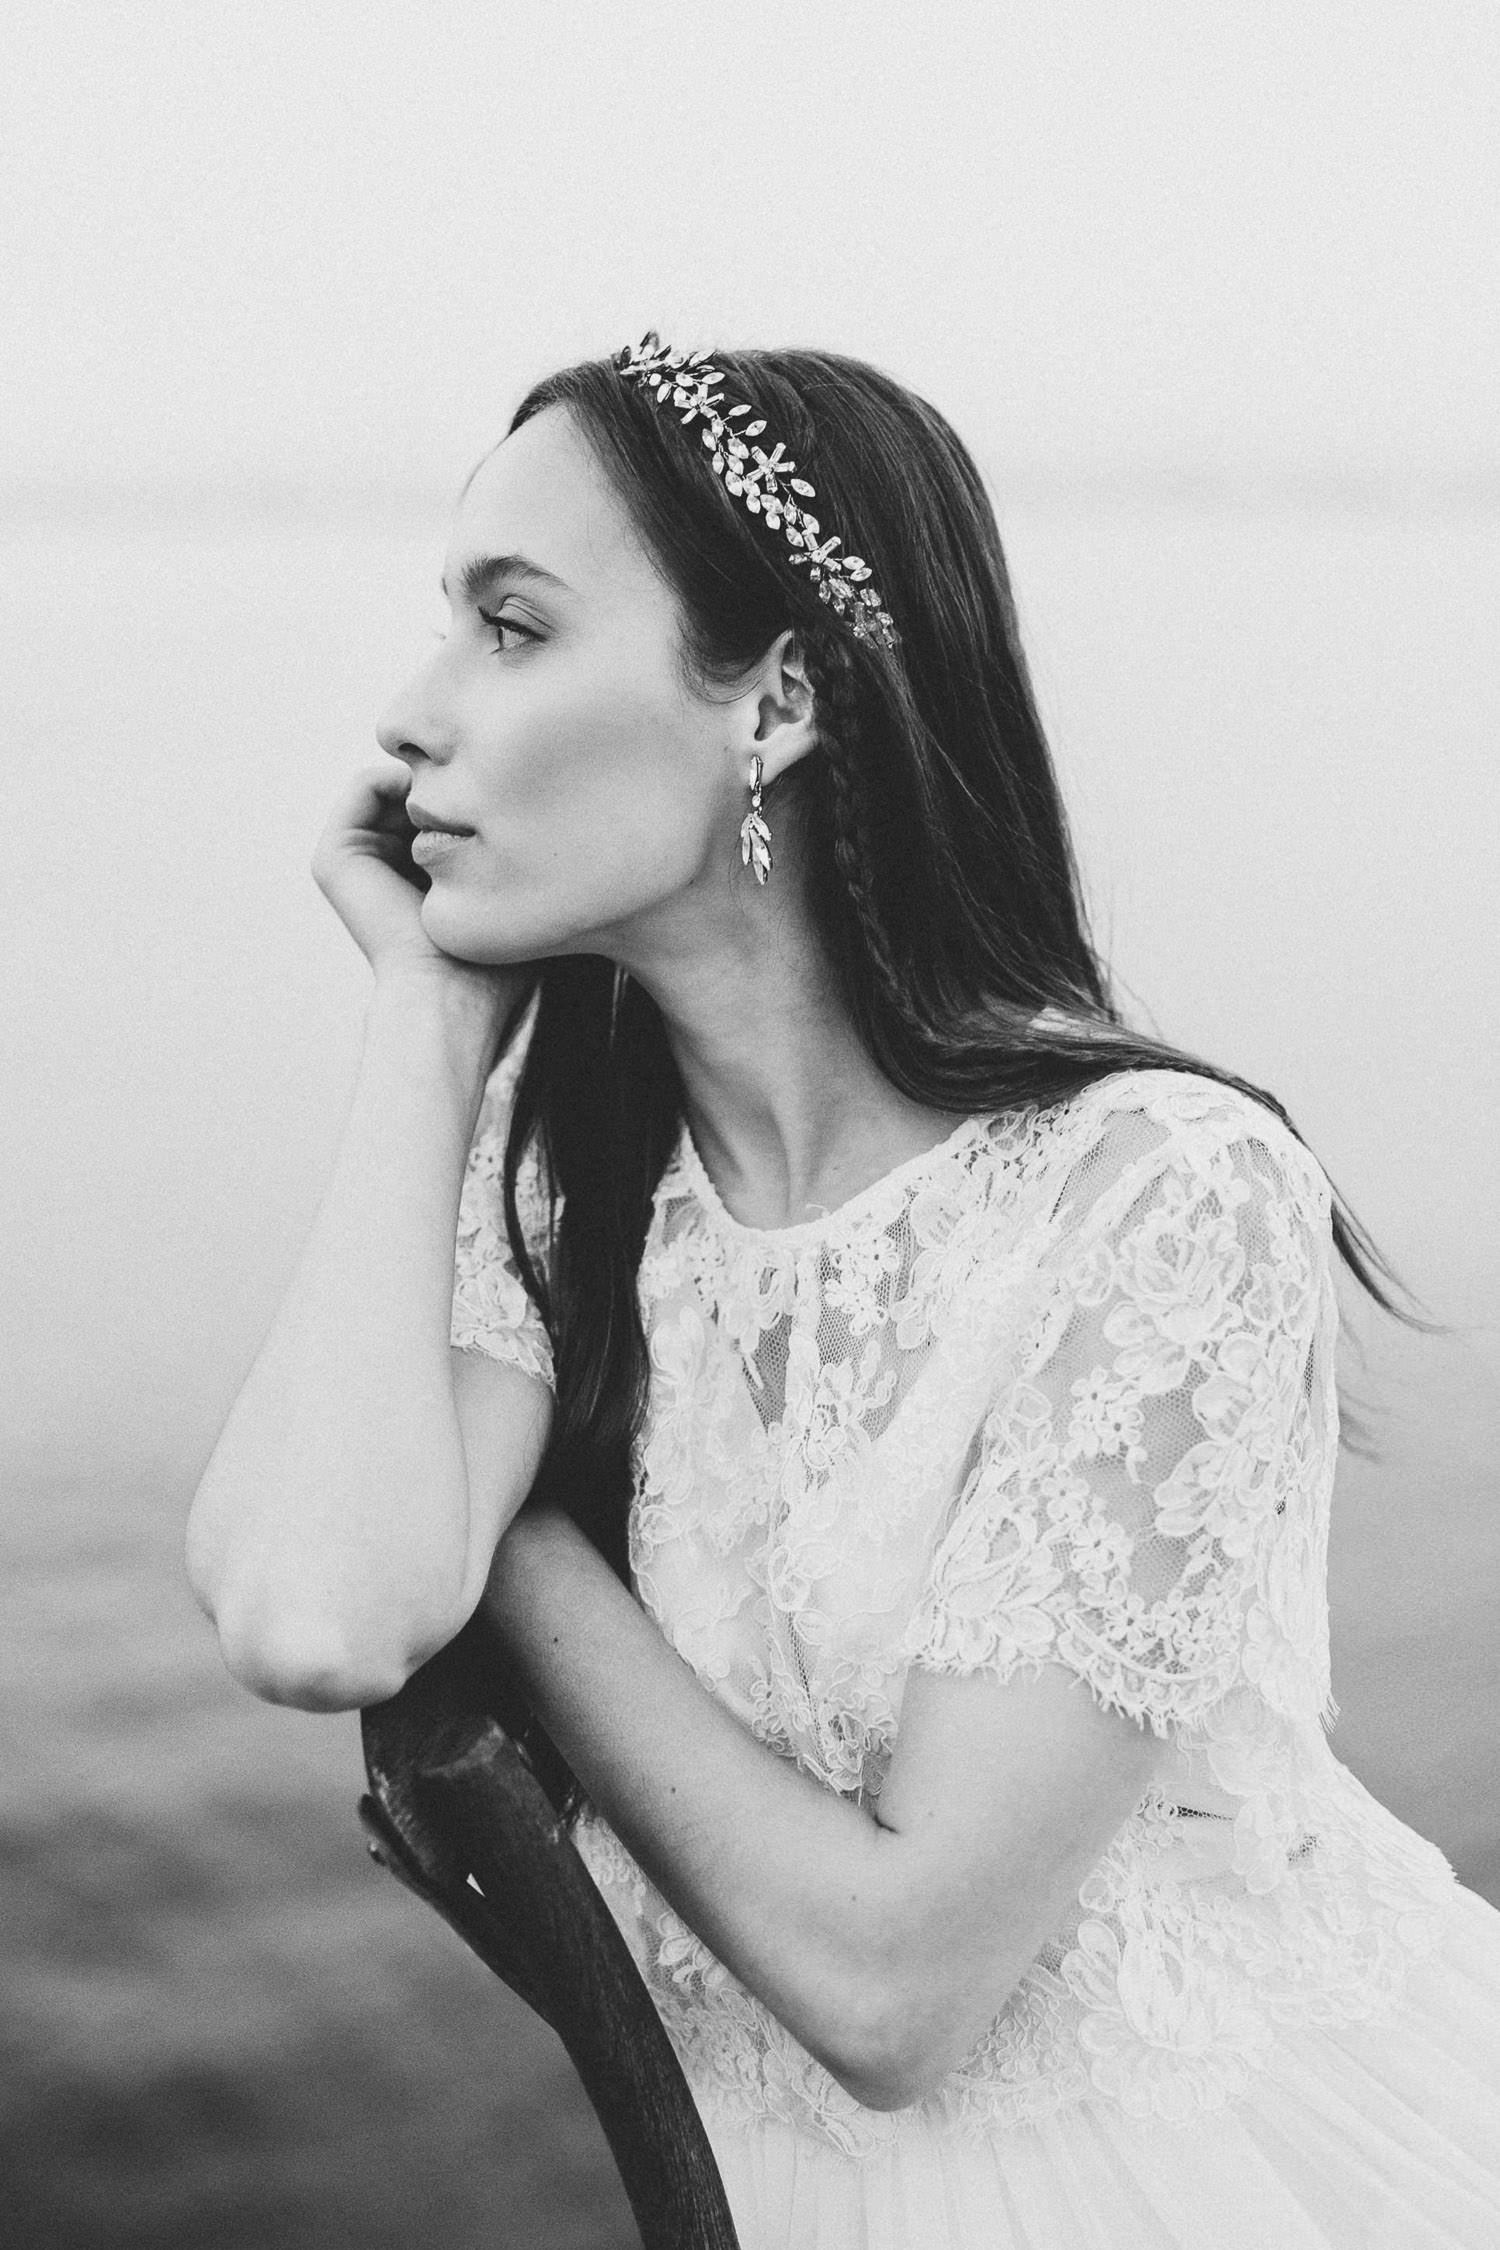 Fine Art bride - ethereal boho wedding | Photo: Camilla Anchisi, Wedding photographer in Tuscany